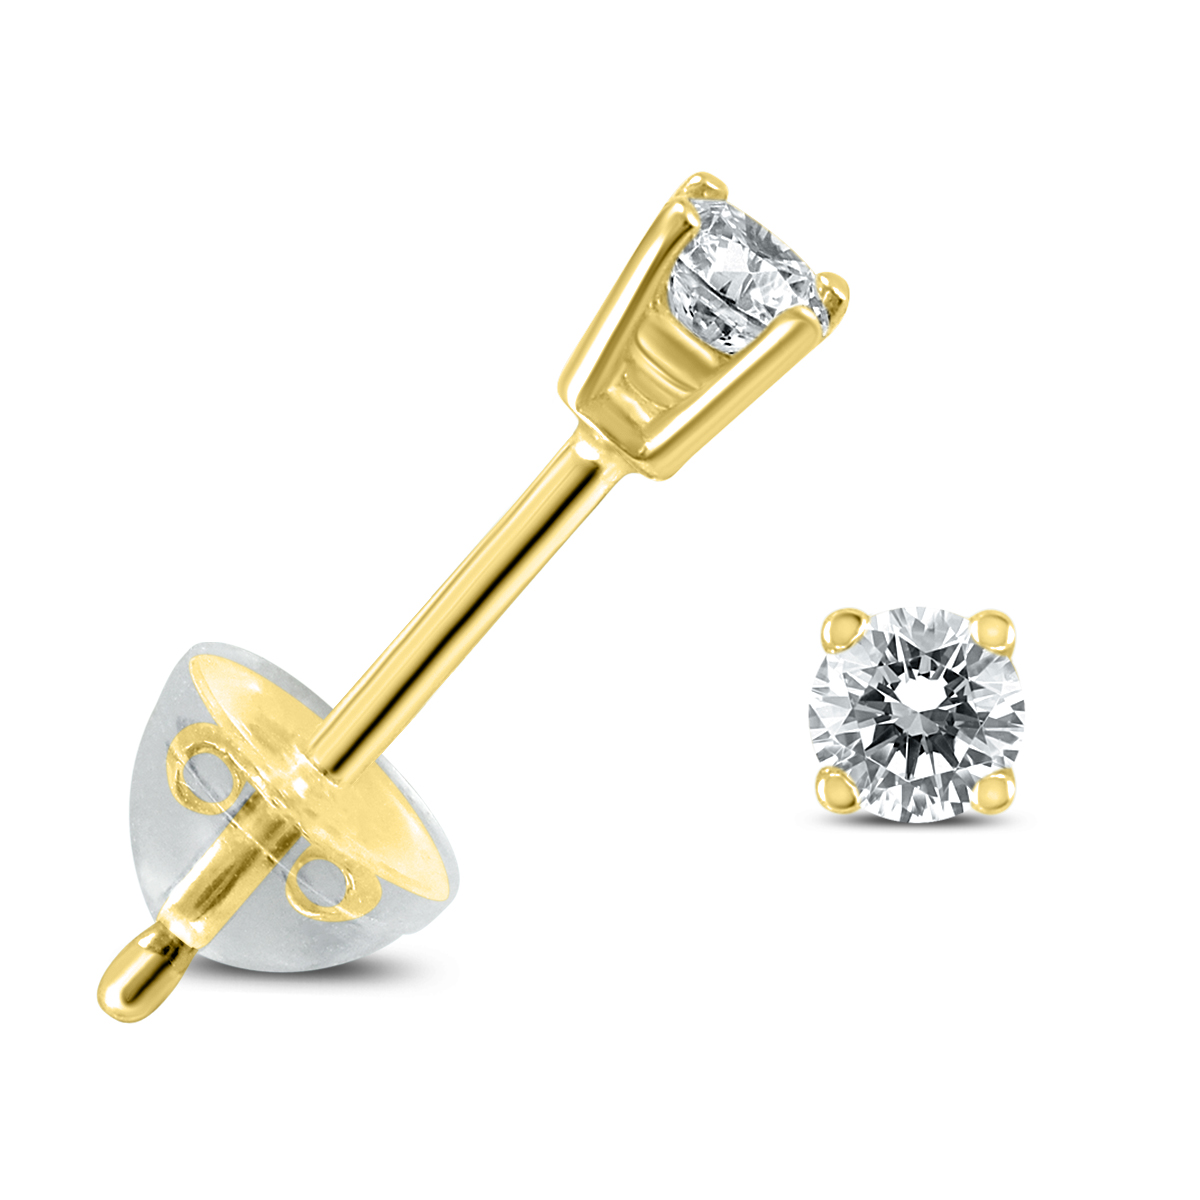 .06CTW Round Diamond Solitaire Stud Earrings In 14k Yellow Gold with Silicon Backs